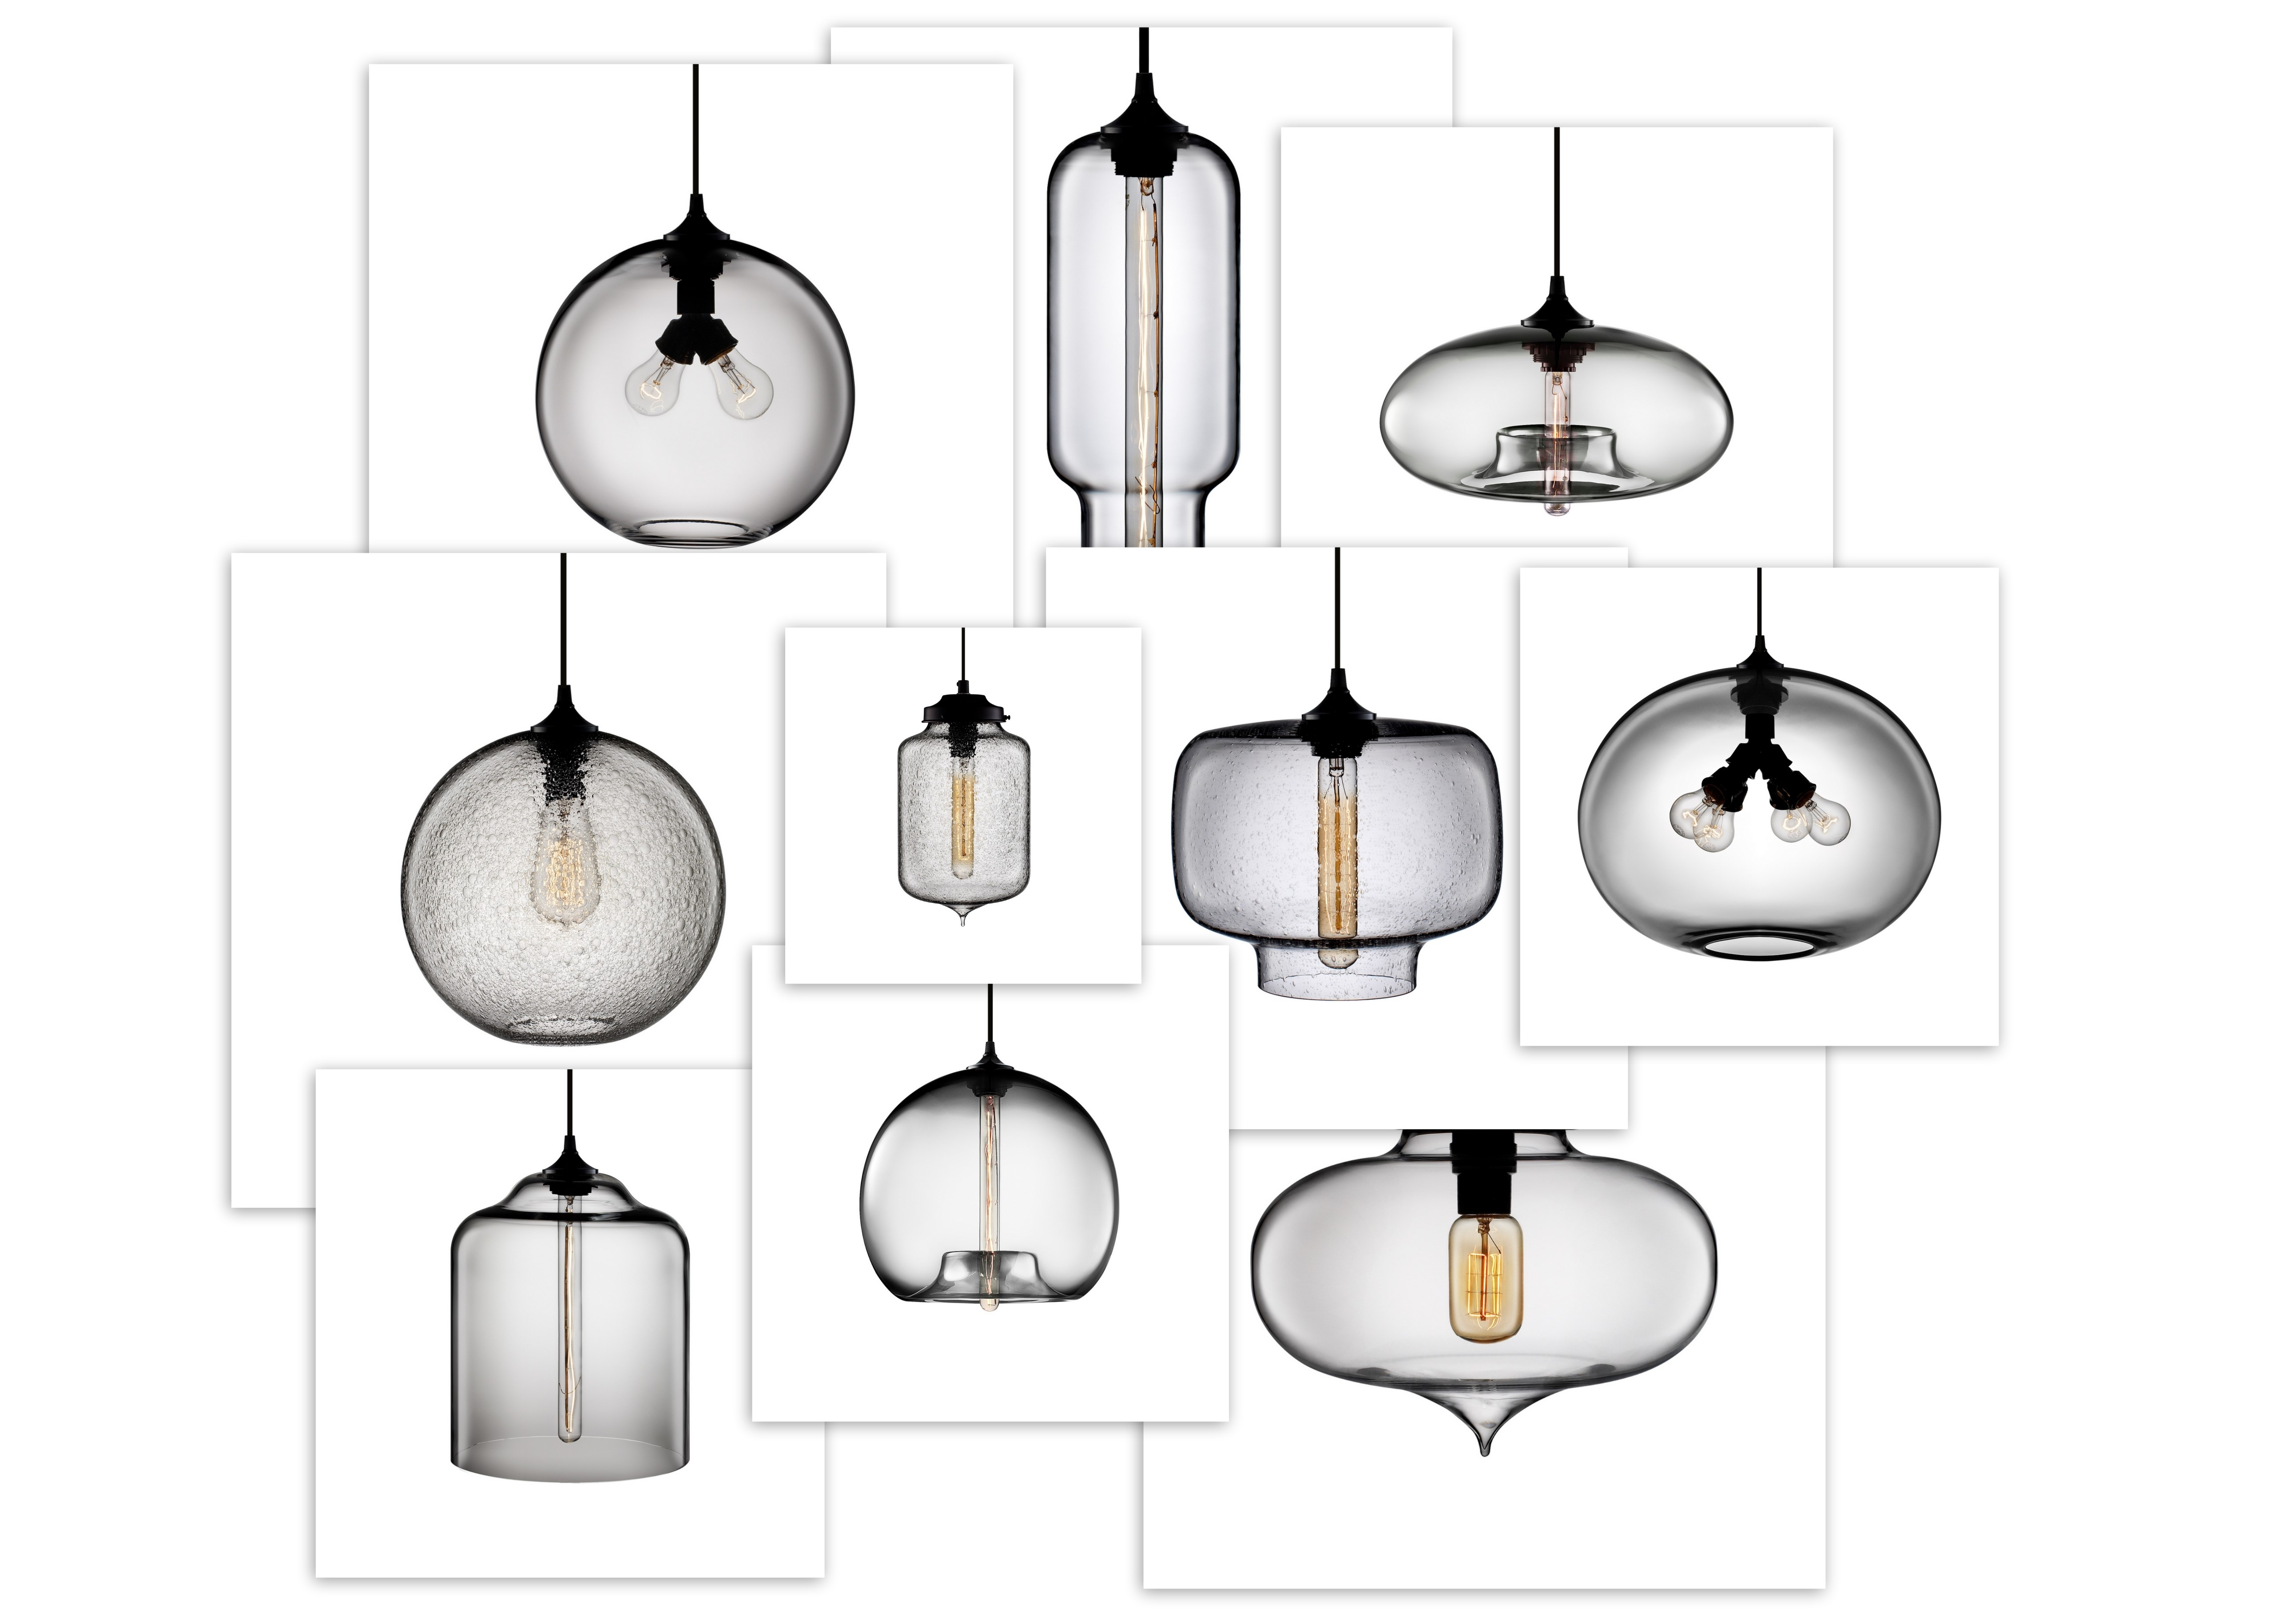 Glass Intended For Outdoor Hanging Lights Masters (View 14 of 20)